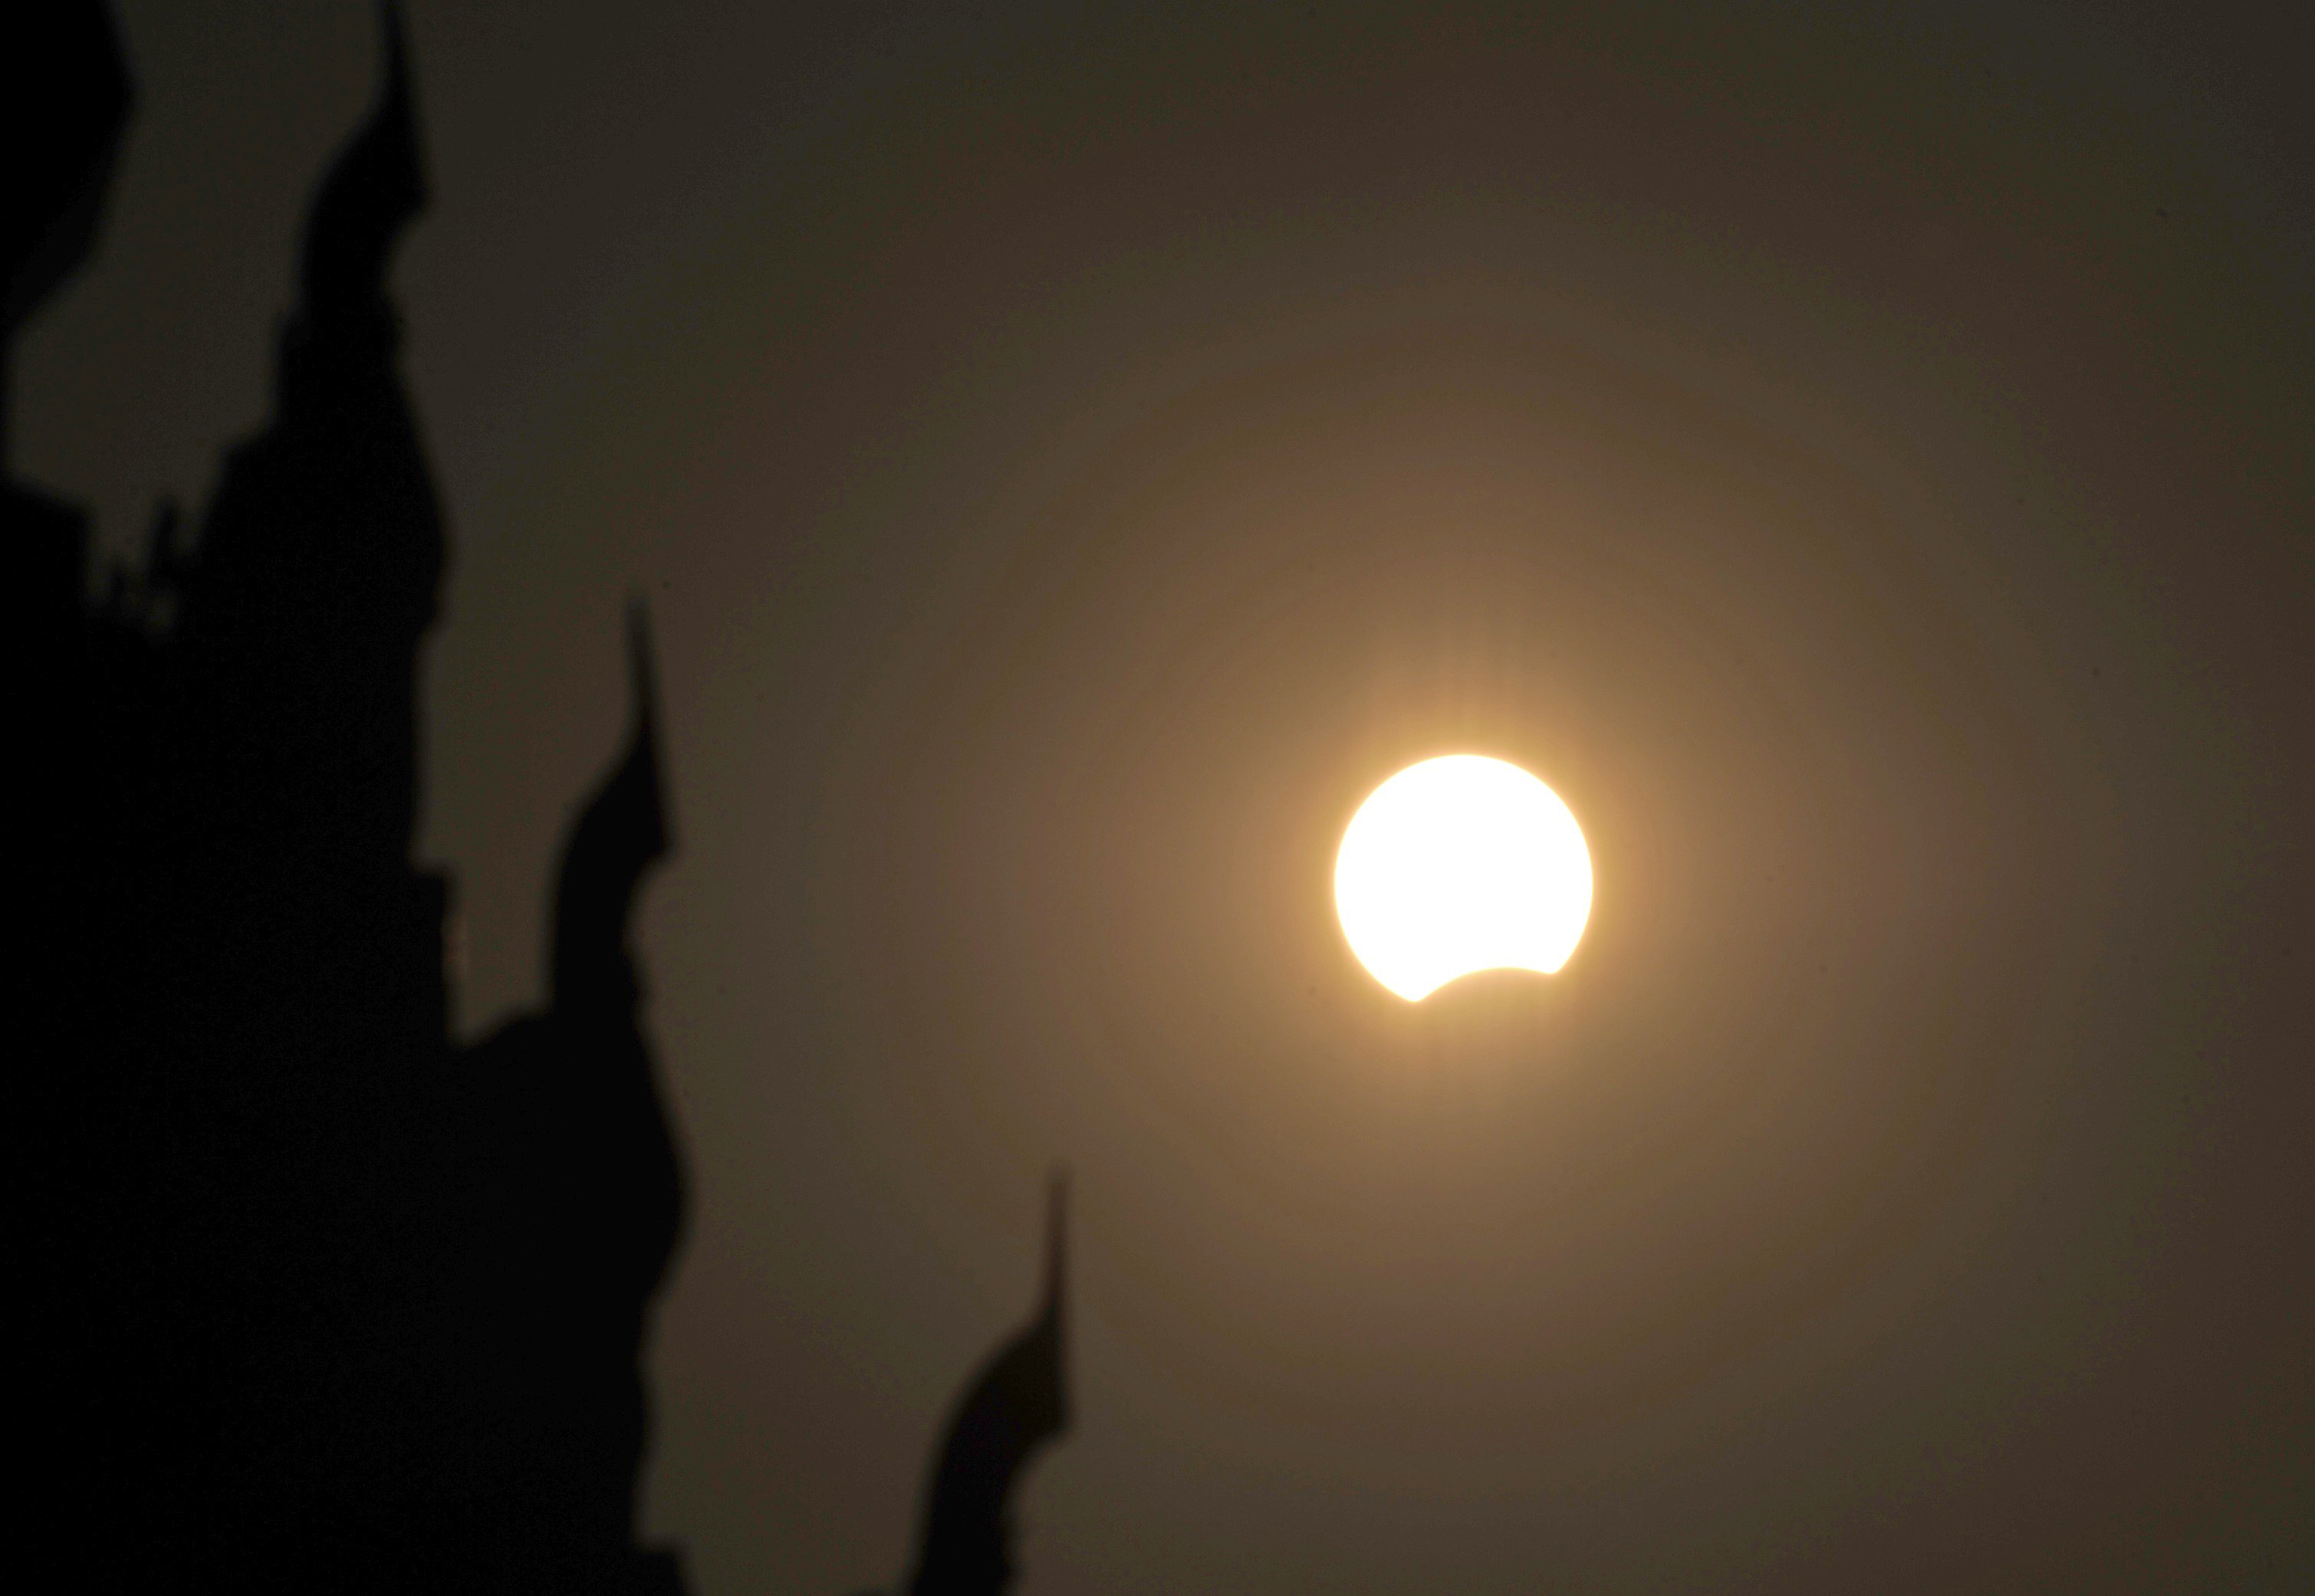 The moon passes in front of the sun during a partial solar eclipse seen from Naypyidaw on March 9.